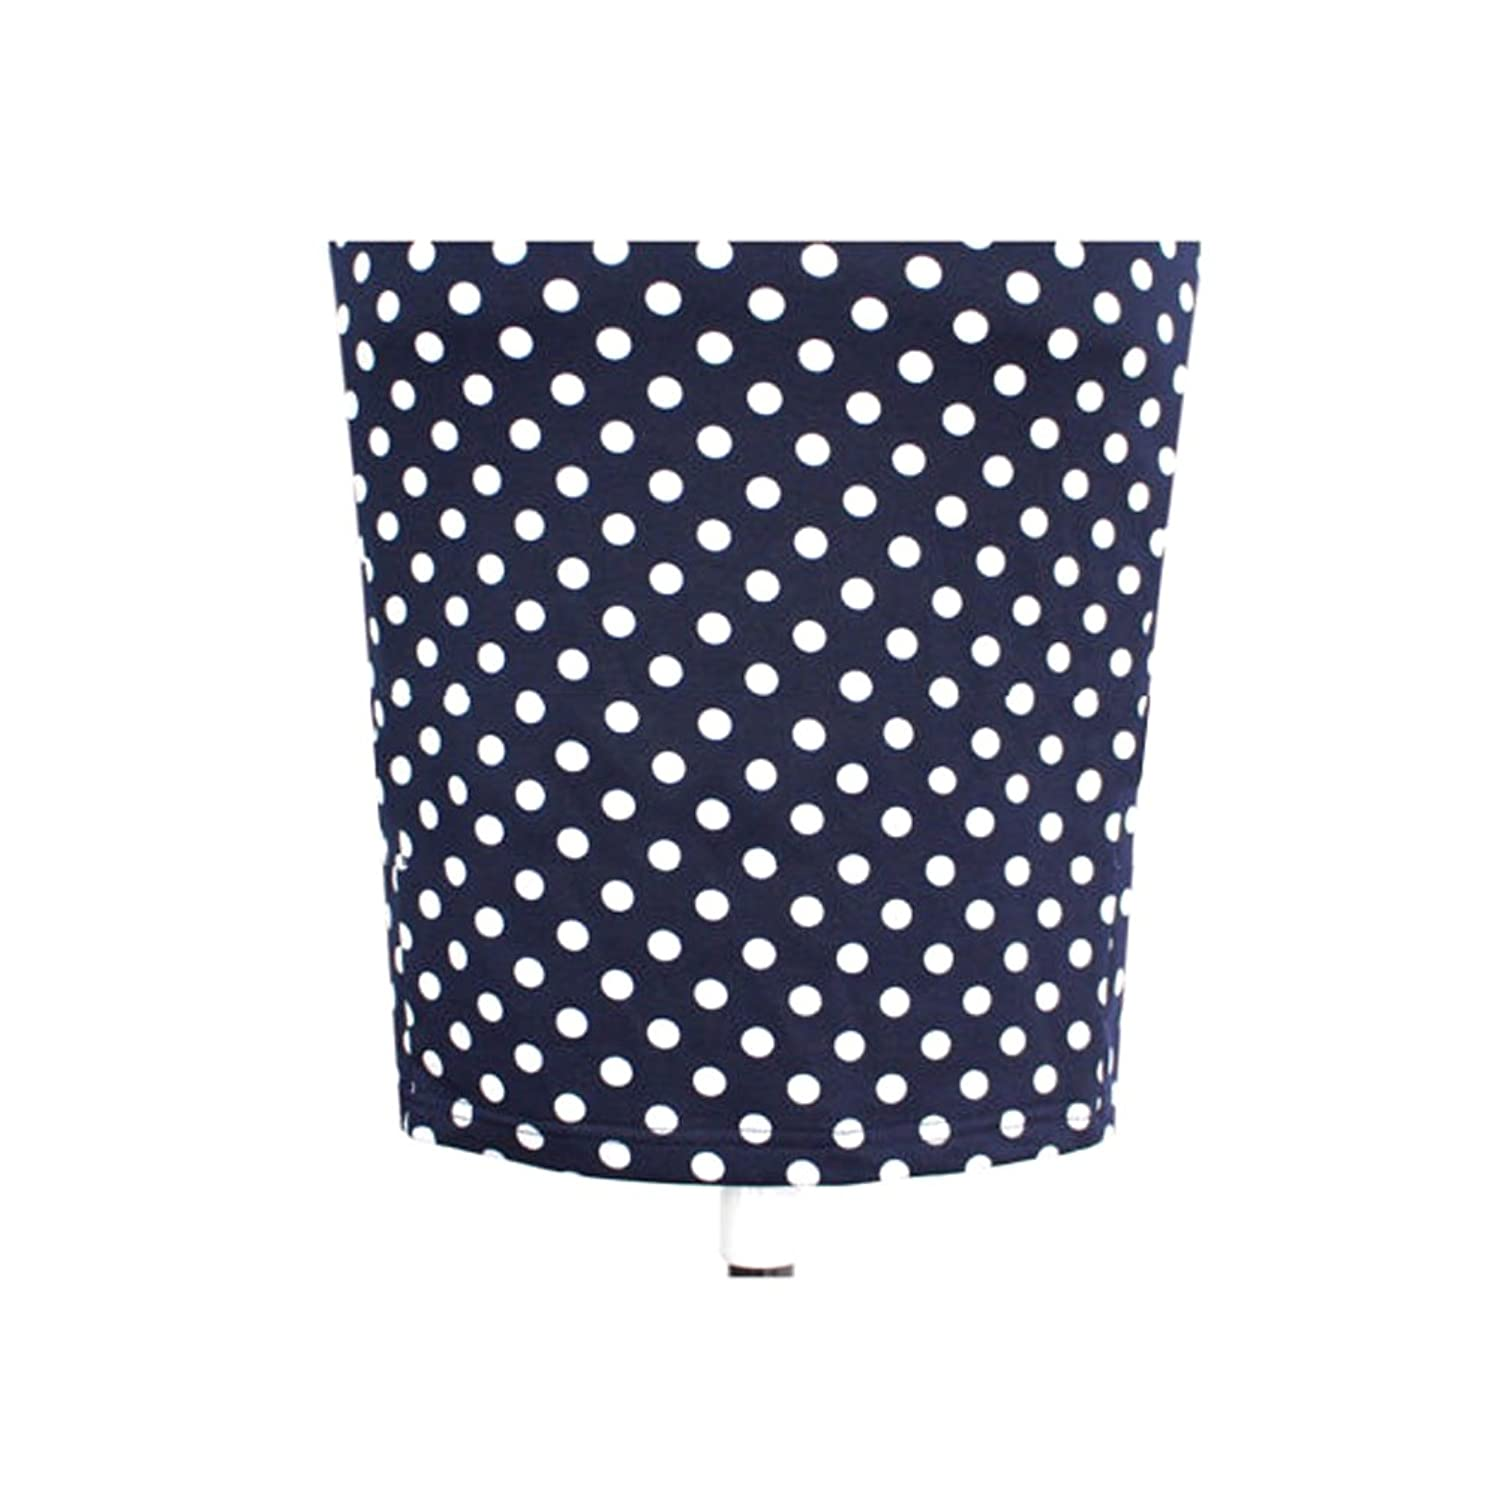 Janecrafts Elegant Pinup Polka Dot Bodycon Pencil Tank Business Work Belted Dress (XL) at Amazon Women�s Clothing store